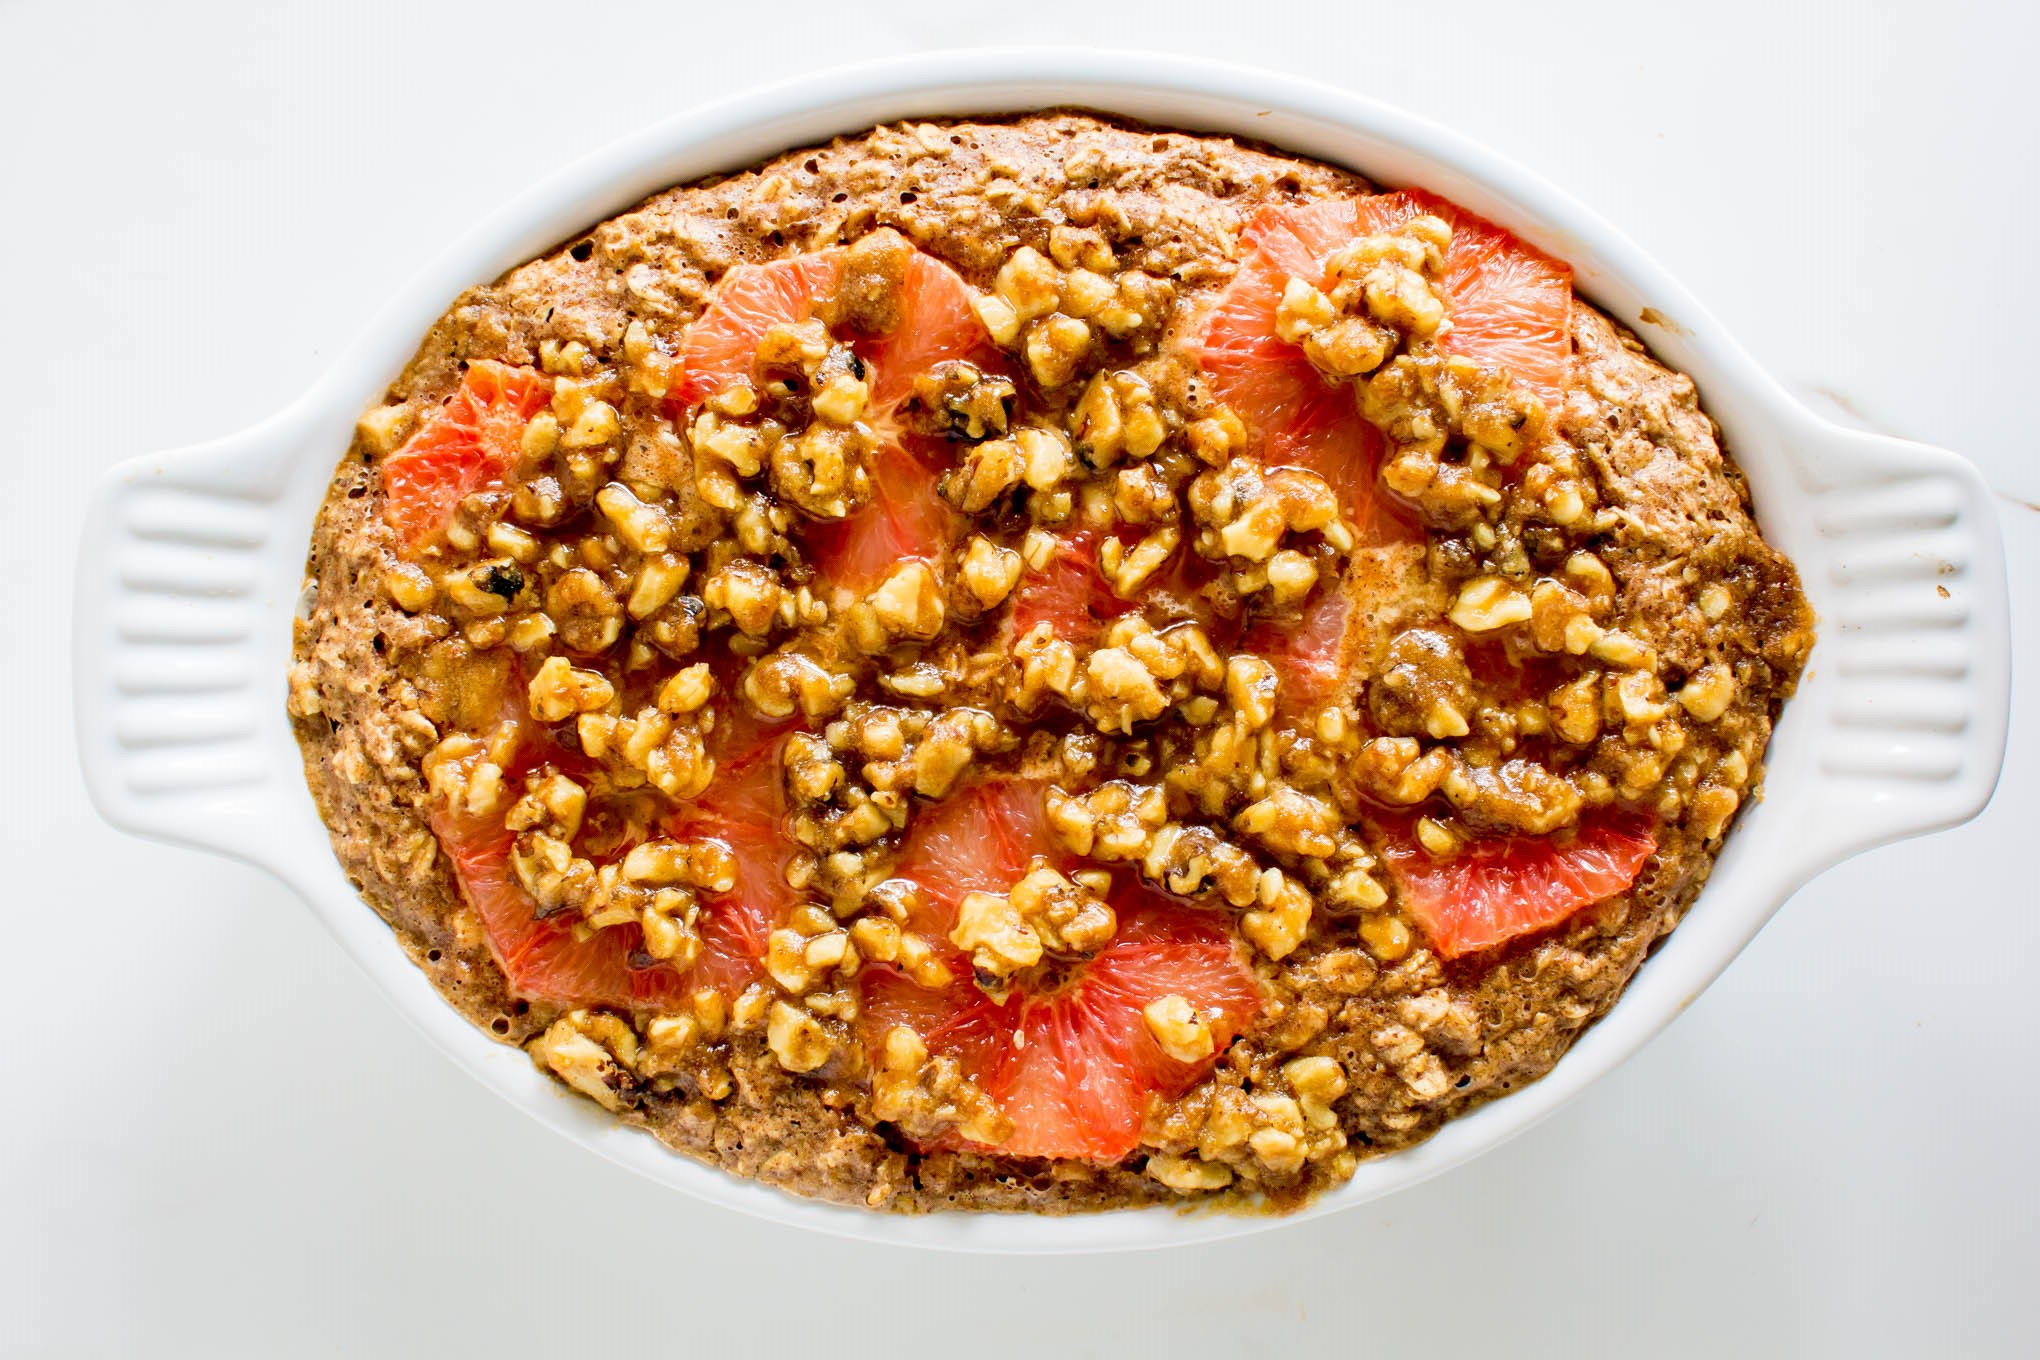 20160128-Grapefruit-Baked-Oatmeal-with-Walnut-Streusel-by-immaeatthat